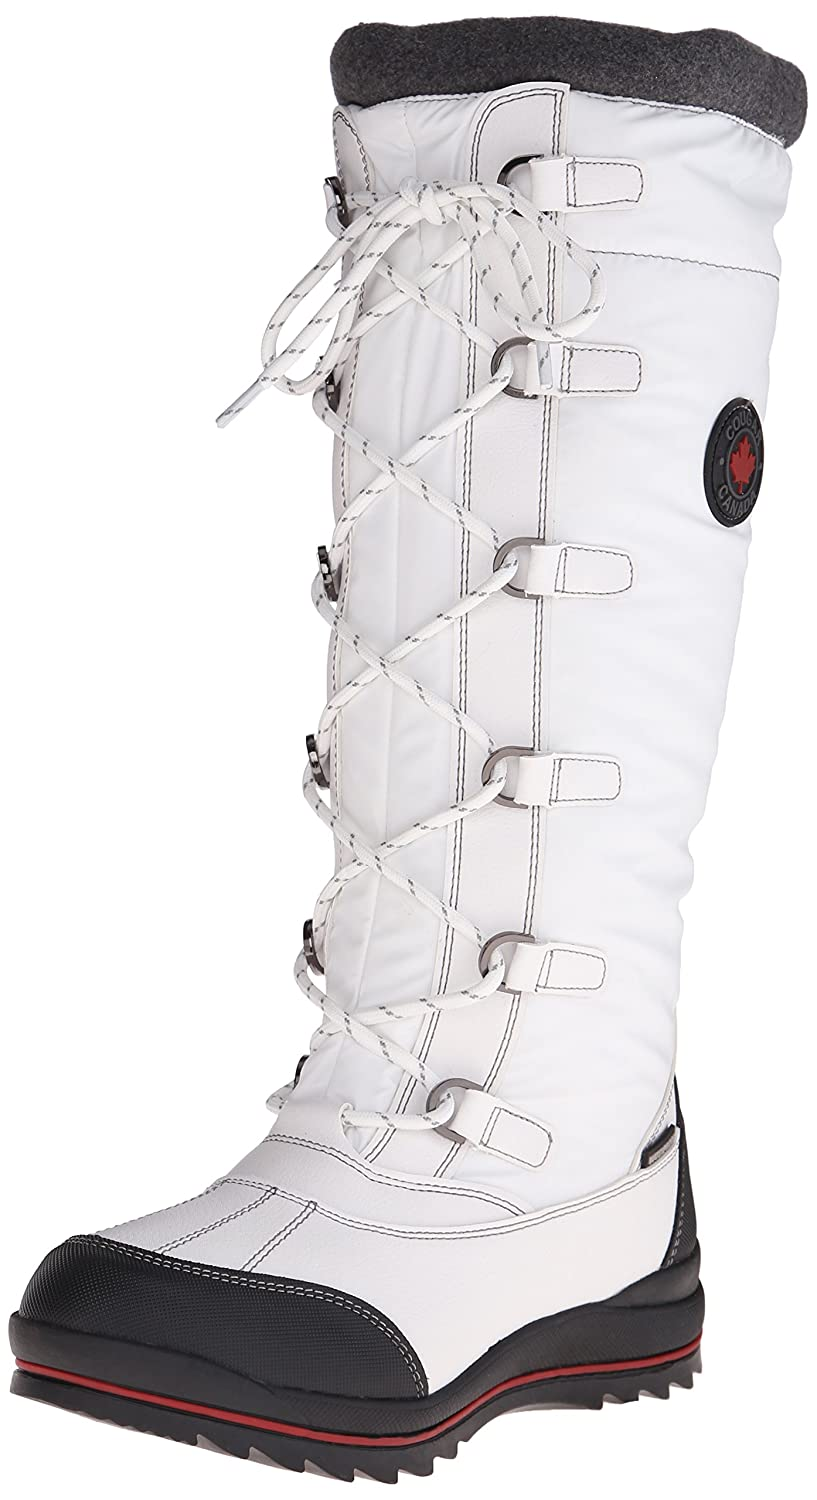 Cougar Women's Canuck Snow Boot B013KPEZ4S 9 B(M) US|White